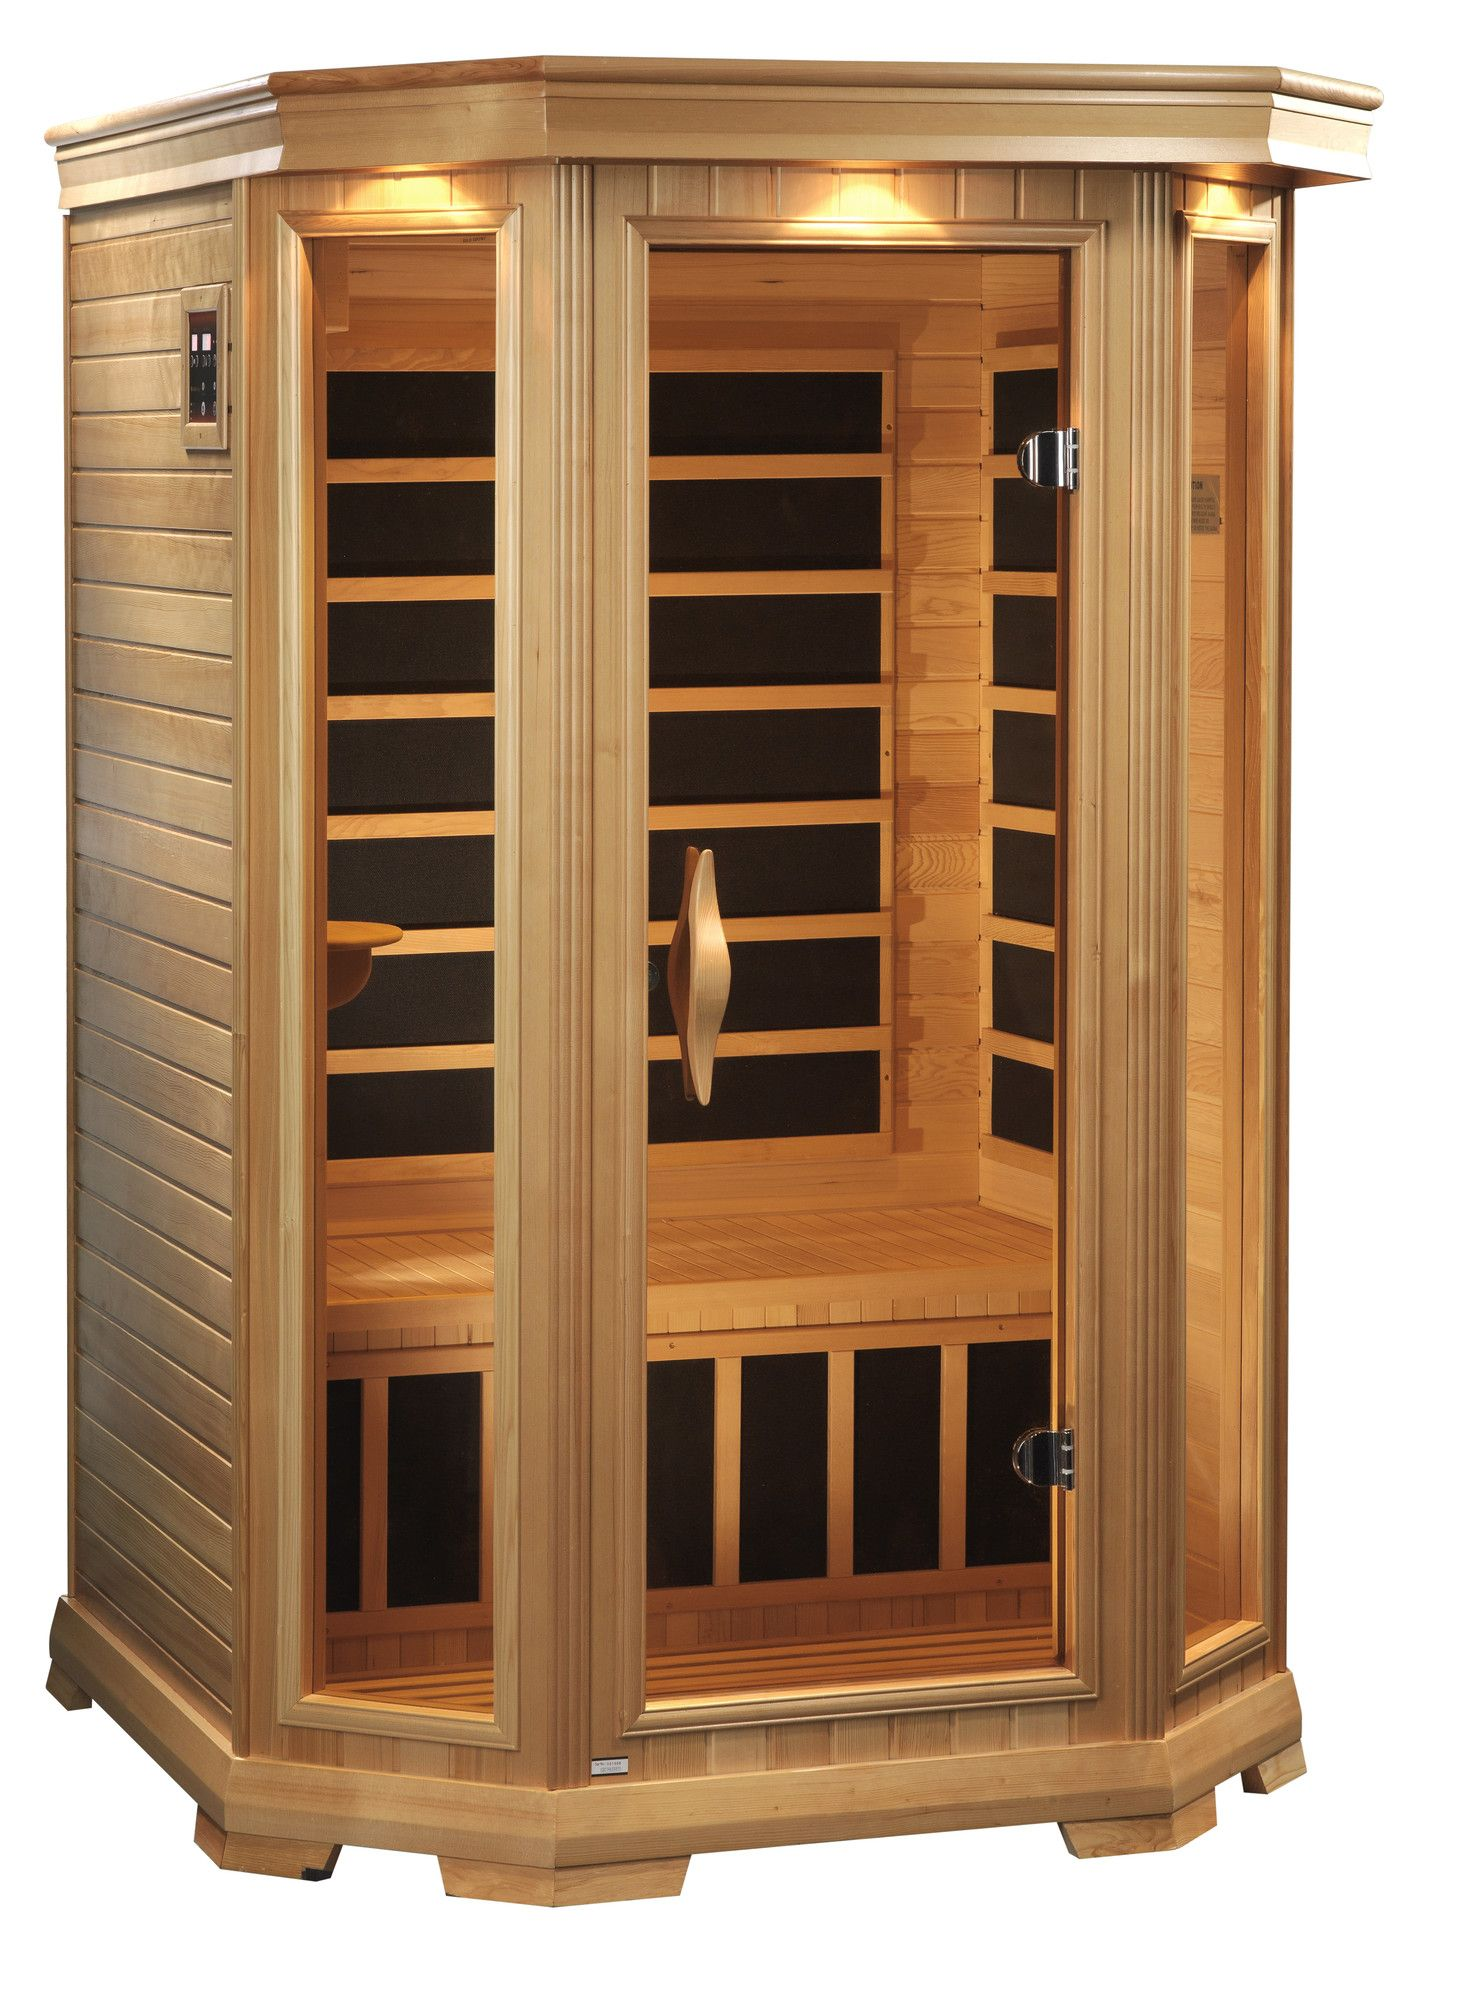 Venture 2 Person Low Emf Far Infrared Sauna Pure Life Energy Saunas Wood Sauna Infrared Sauna Dry Sauna